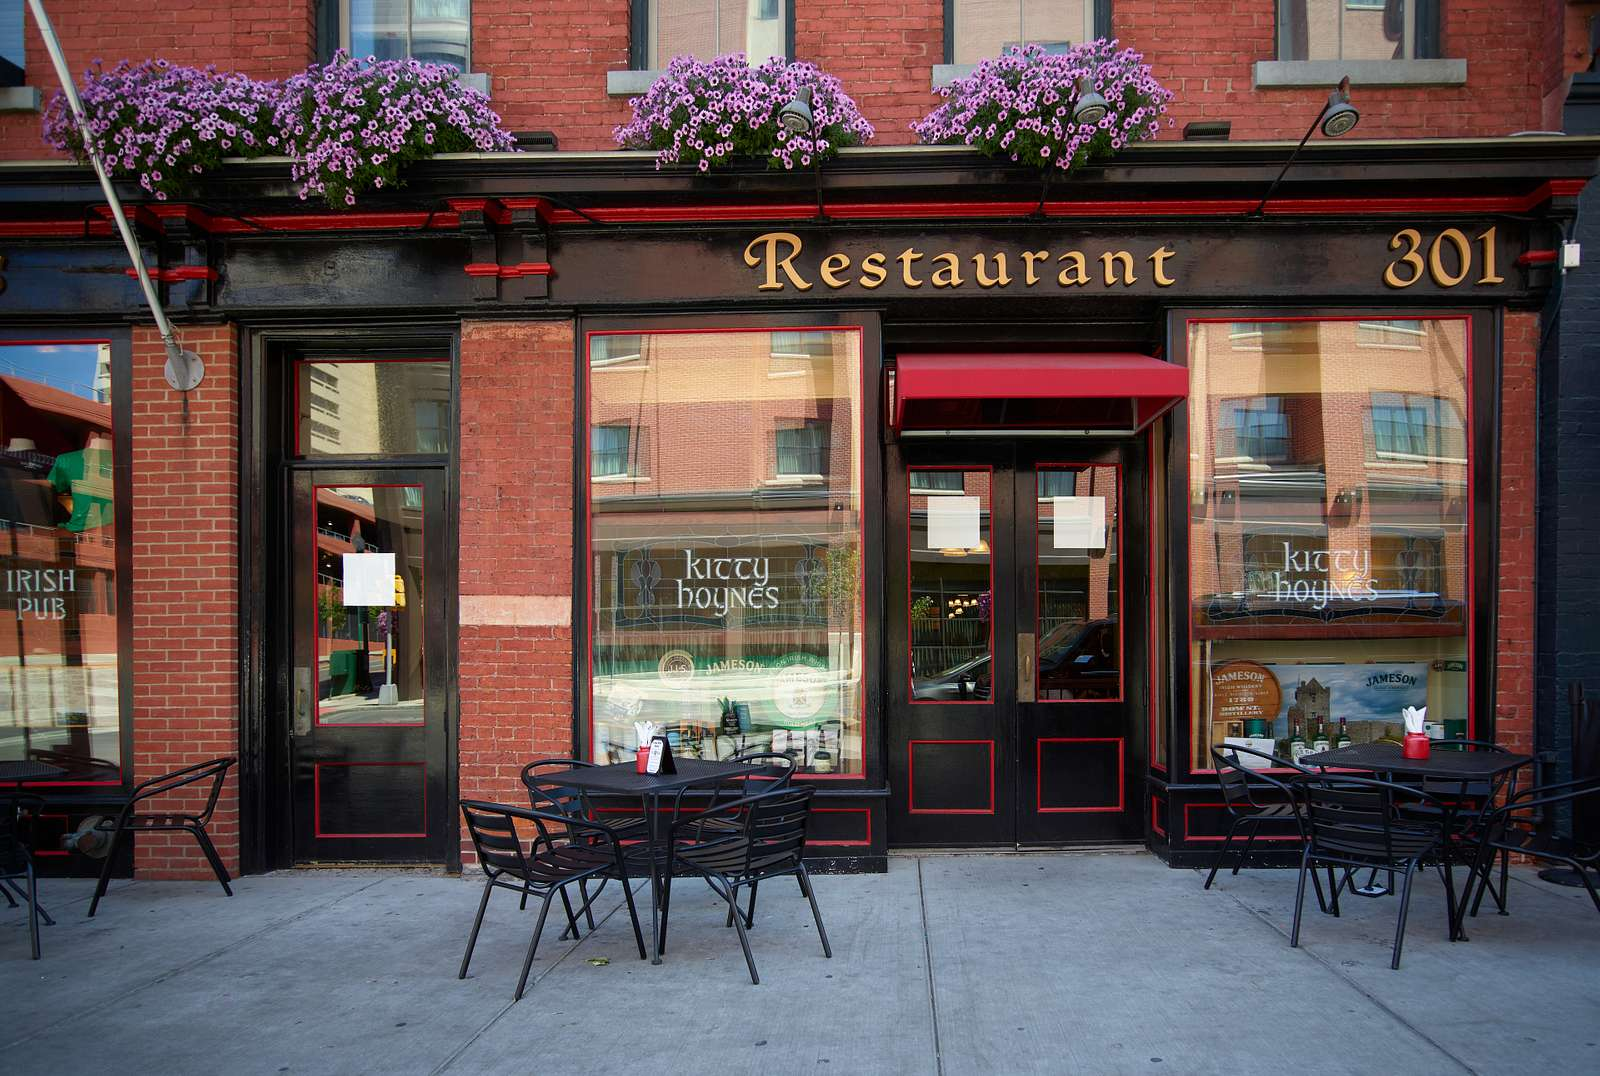 Festooned flower boxes above the entrance lend a European flavor to a downtown restaurant in Syracuse, New York